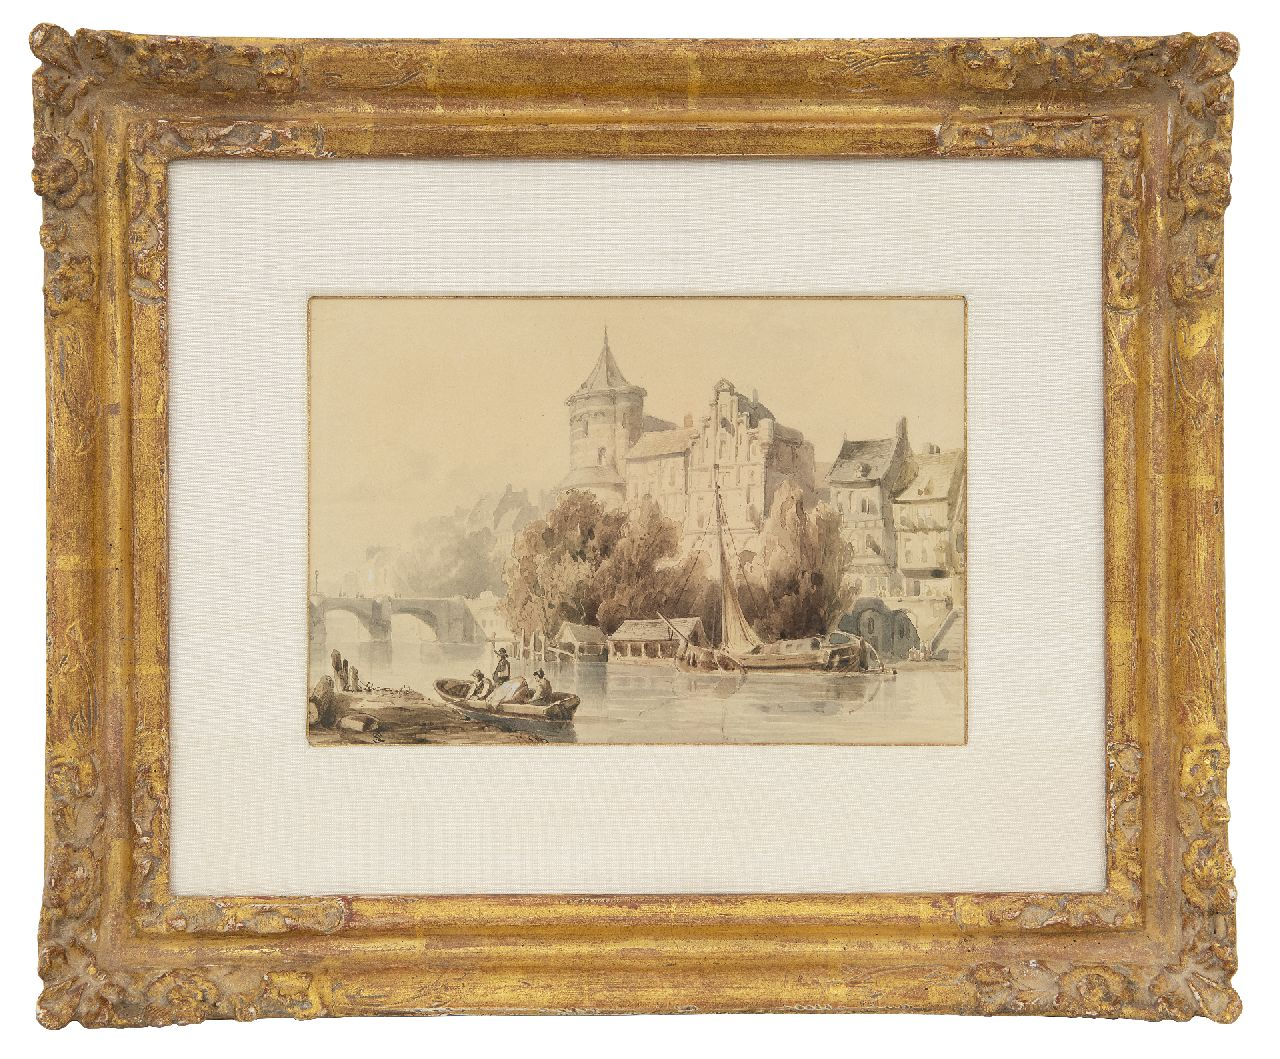 Springer C.  | Cornelis Springer | Watercolours and drawings offered for sale | A busy day along the river, sepia on paper 14.0 x 20.4 cm, signed l.l. with monogram and executed ca. 1840-1845